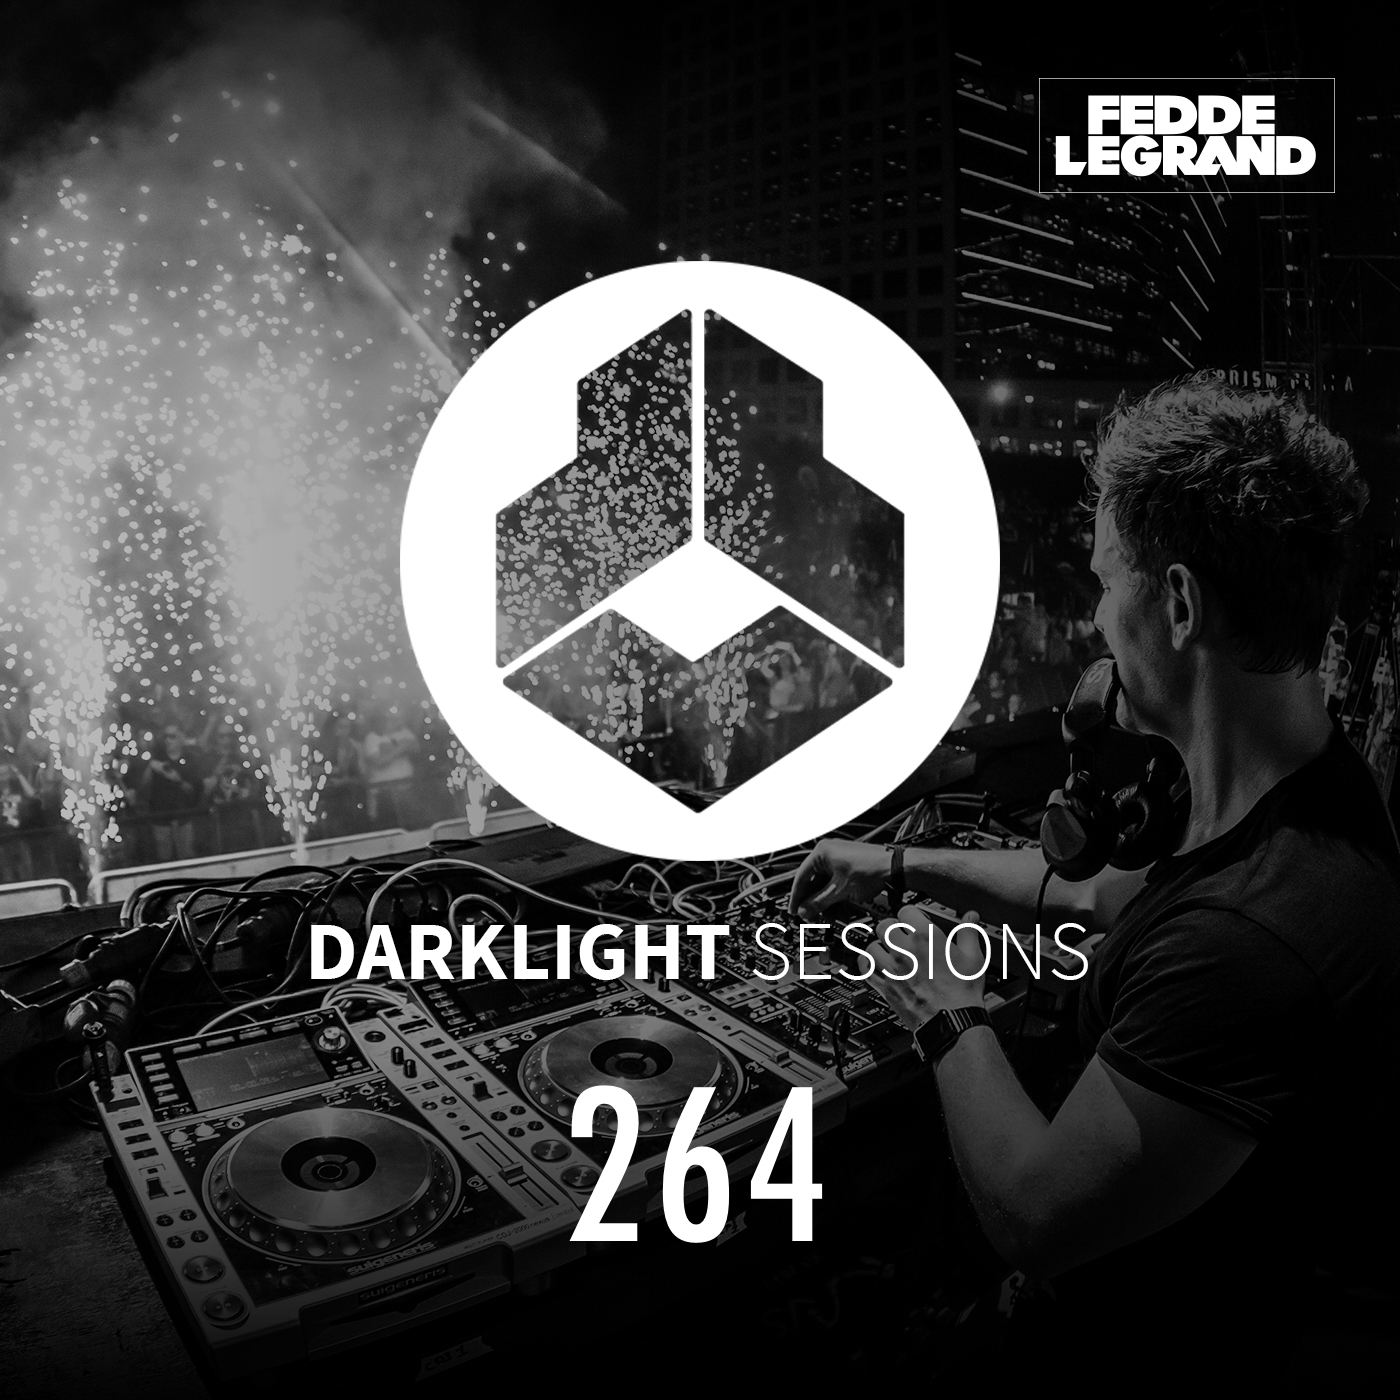 Darklight Sessions 264